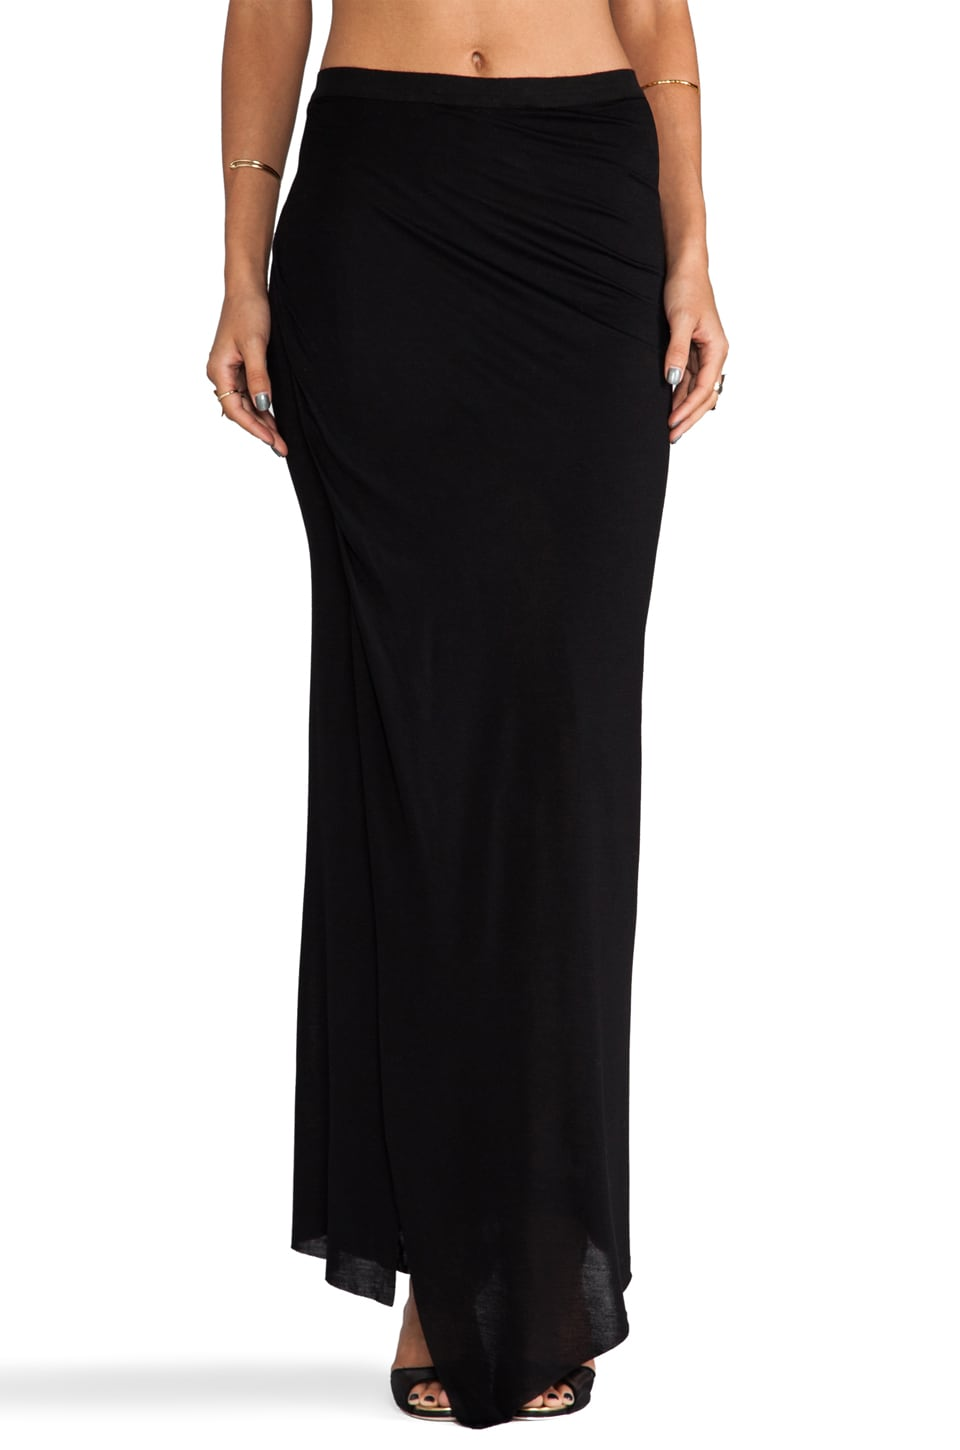 Enza Costa Rayon Jersey Wrap Column Skirt in Black